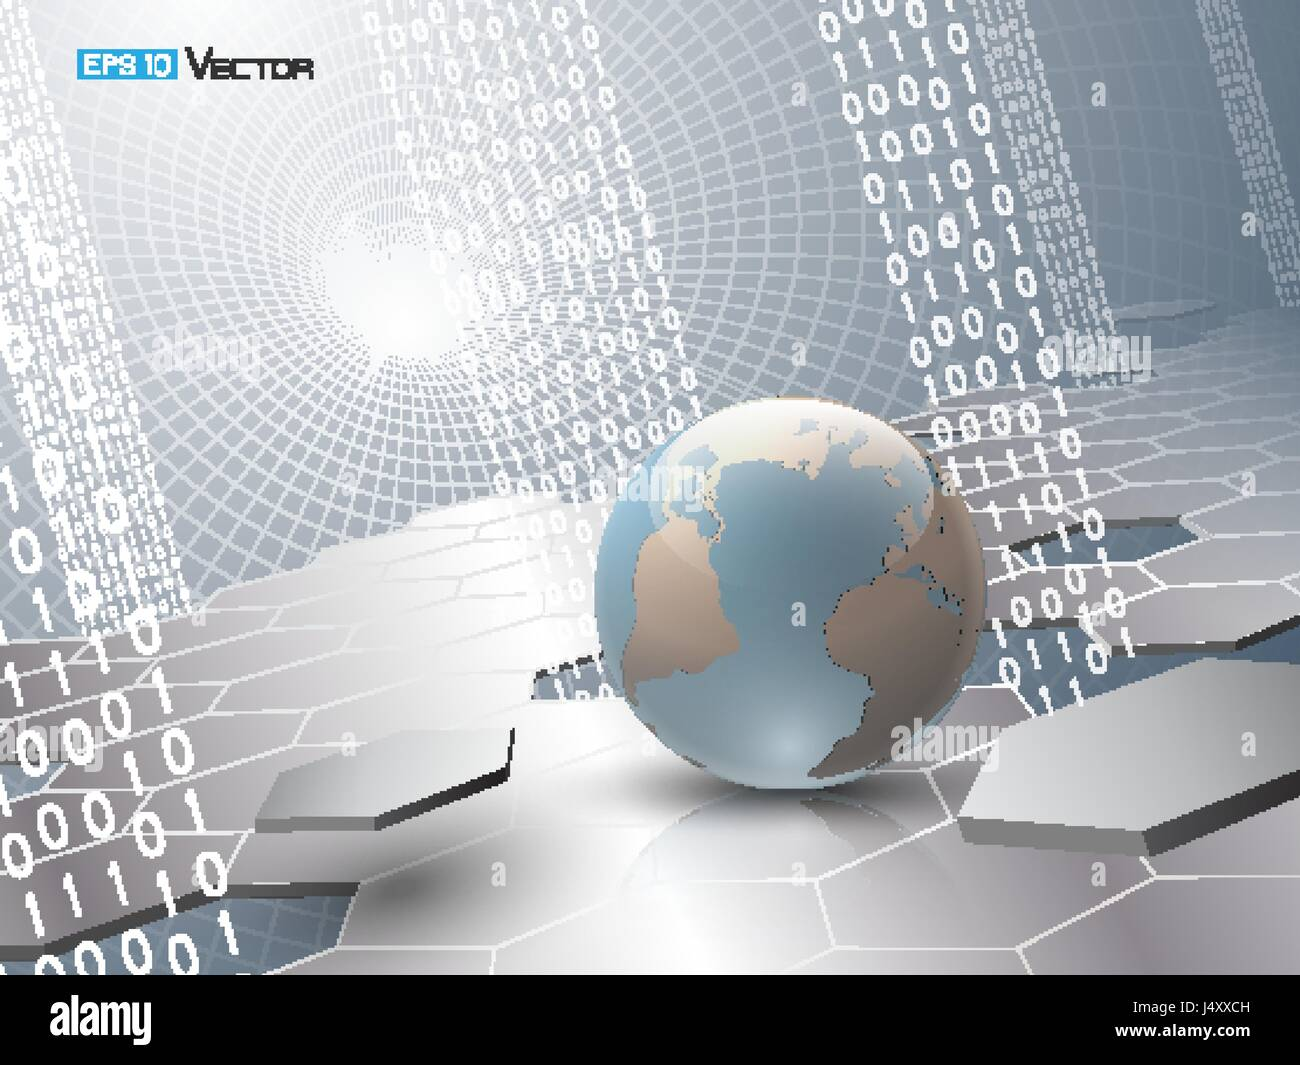 Digital code background abstract vector illustration including digital code background abstract vector illustration including binary code hexagons and sphere with world map used clipping and opacity masks gumiabroncs Image collections